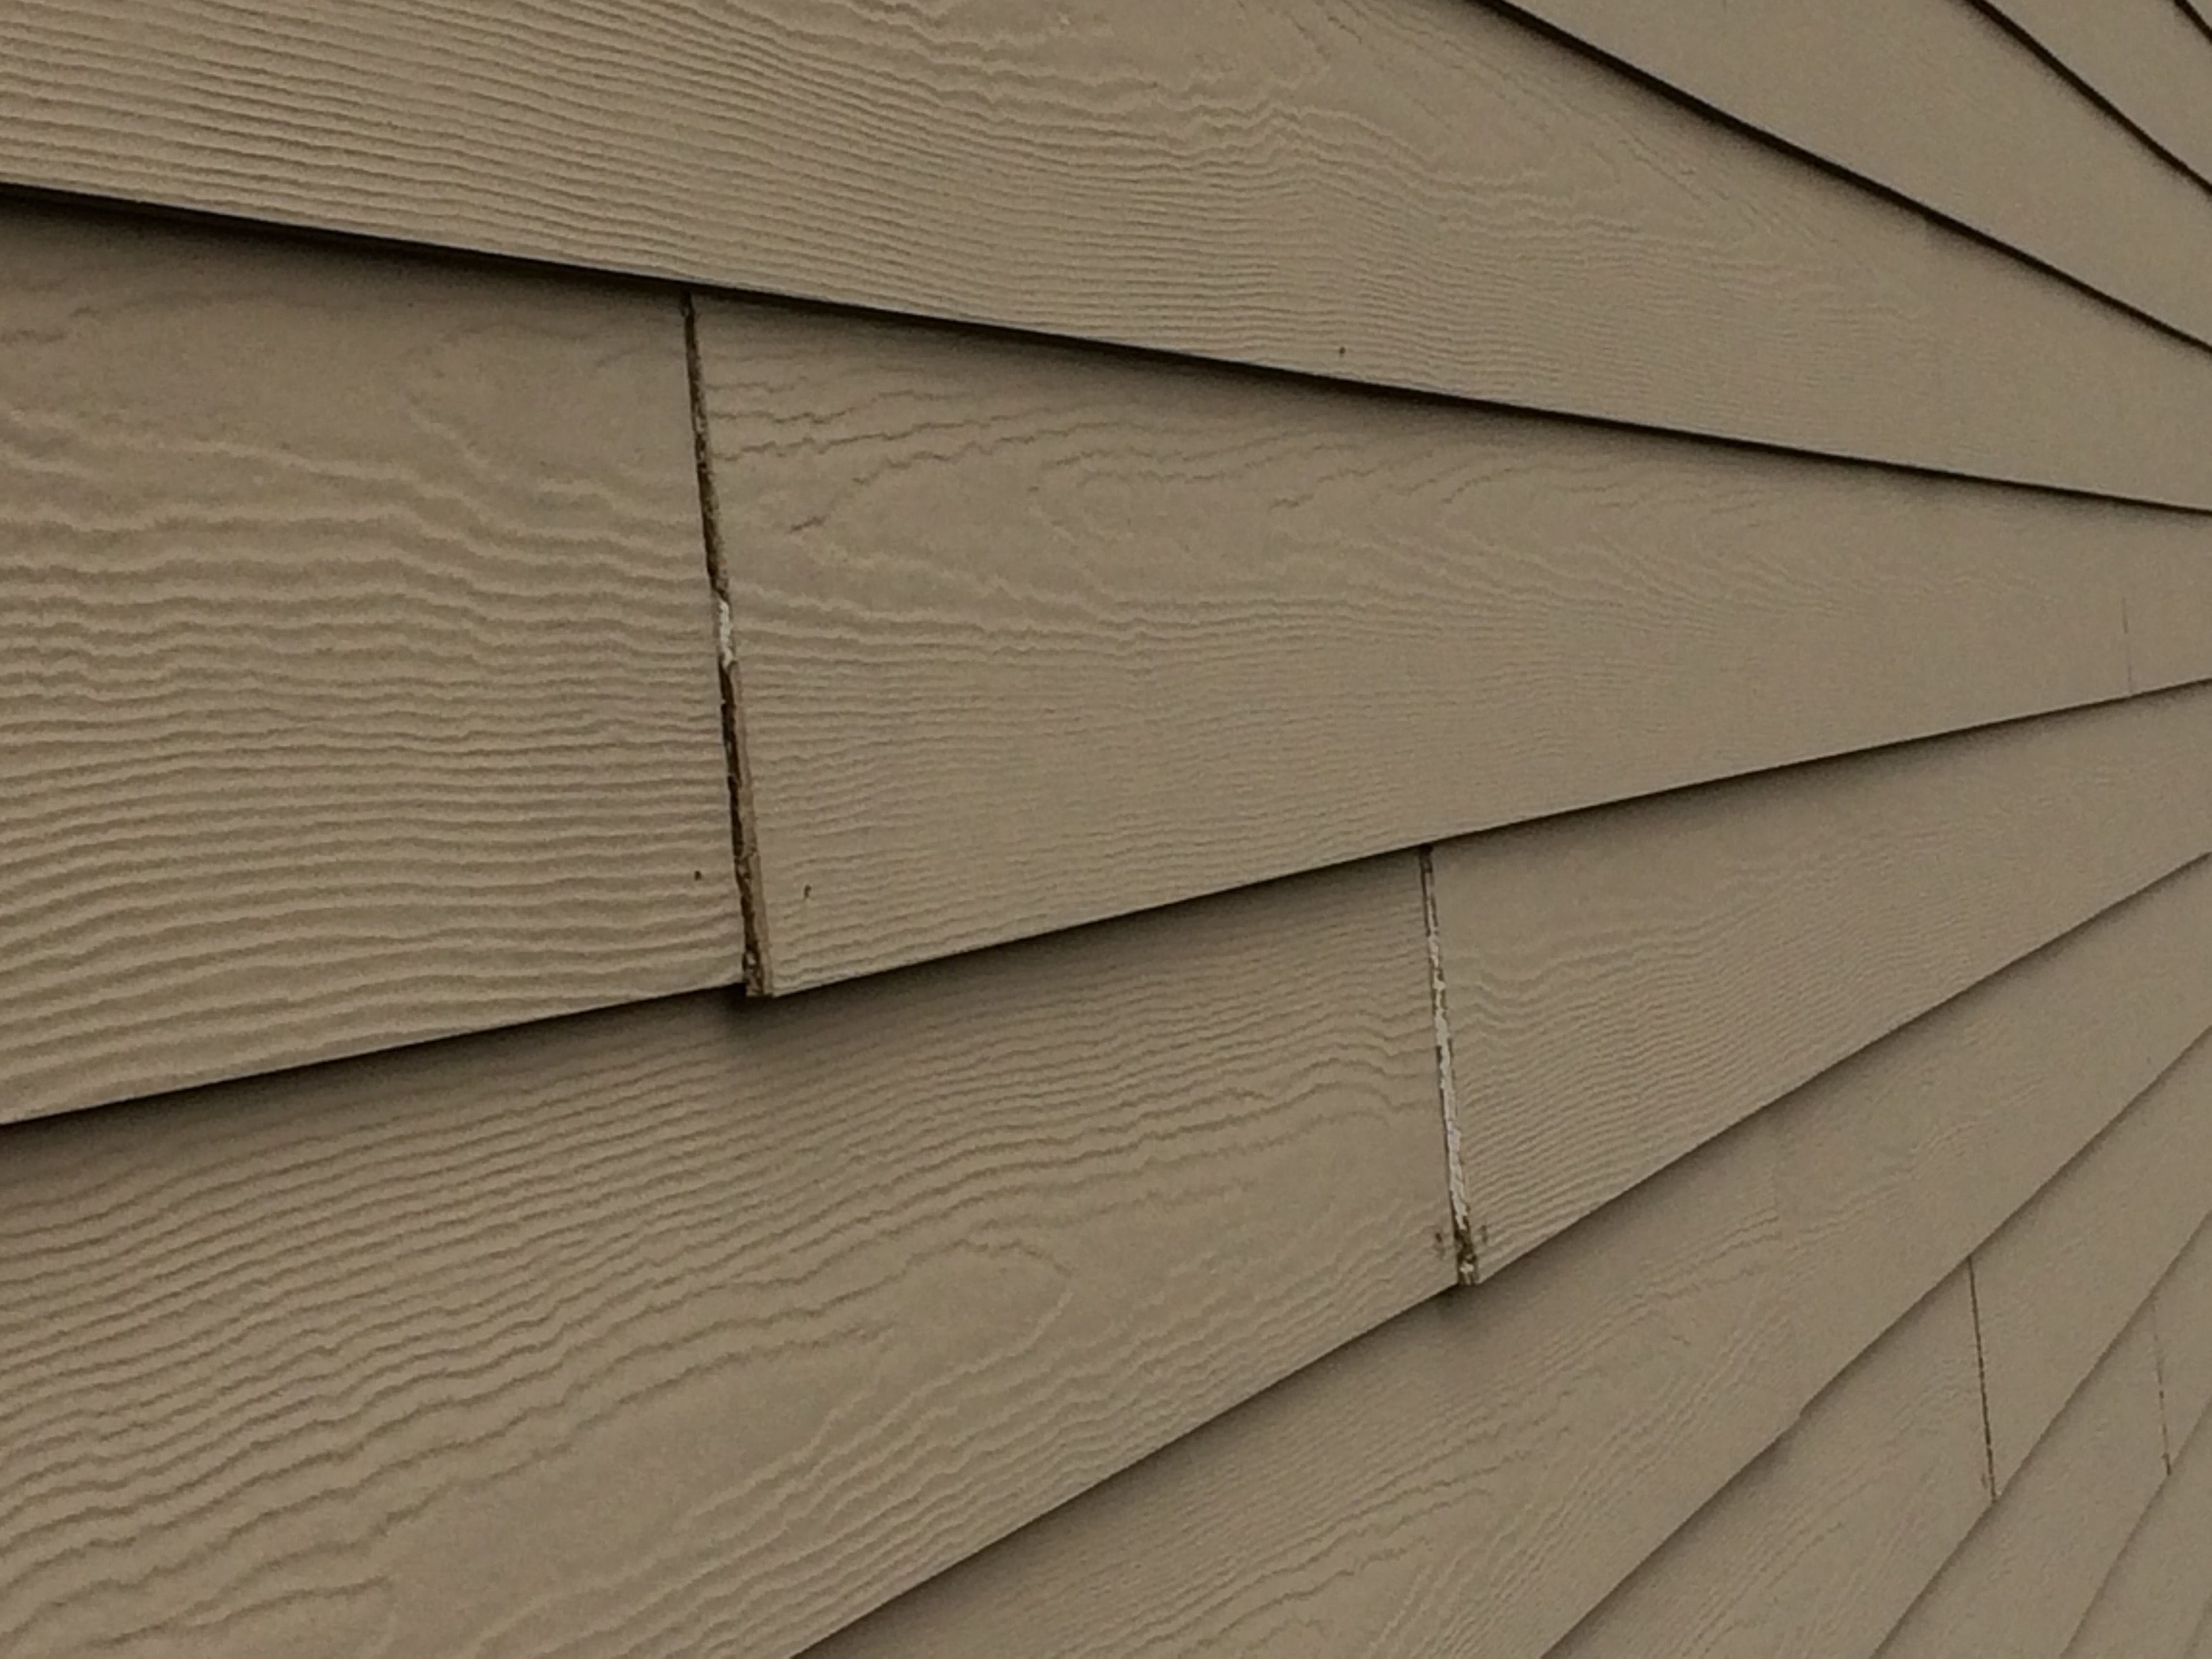 Vinyl siding that looks like cedar planks